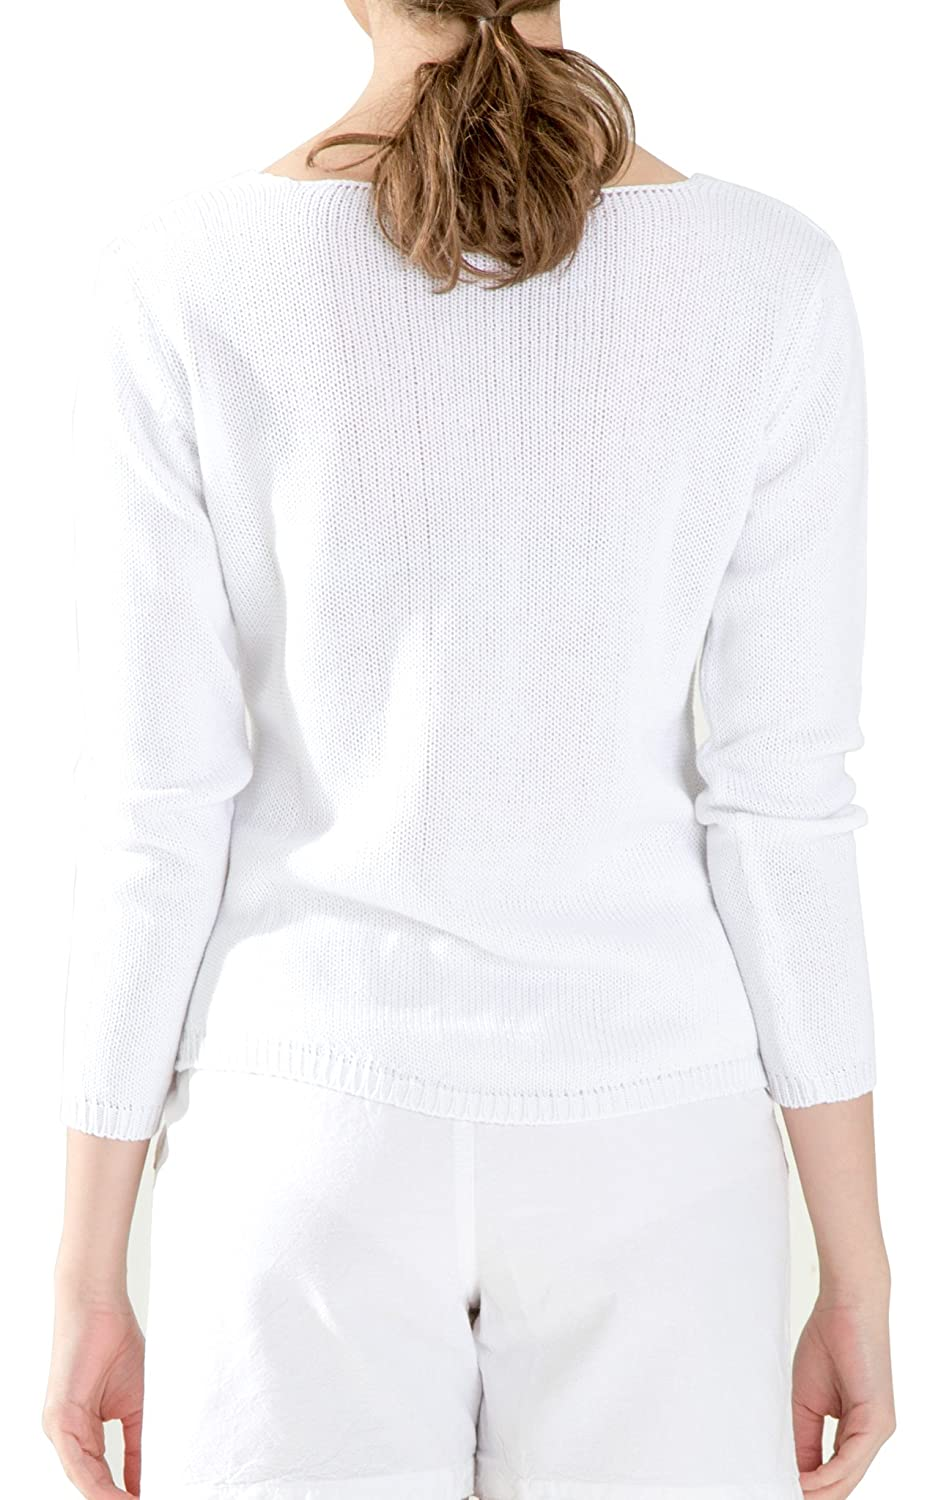 White by Nature Womens Star Knitted Cotton Sweater